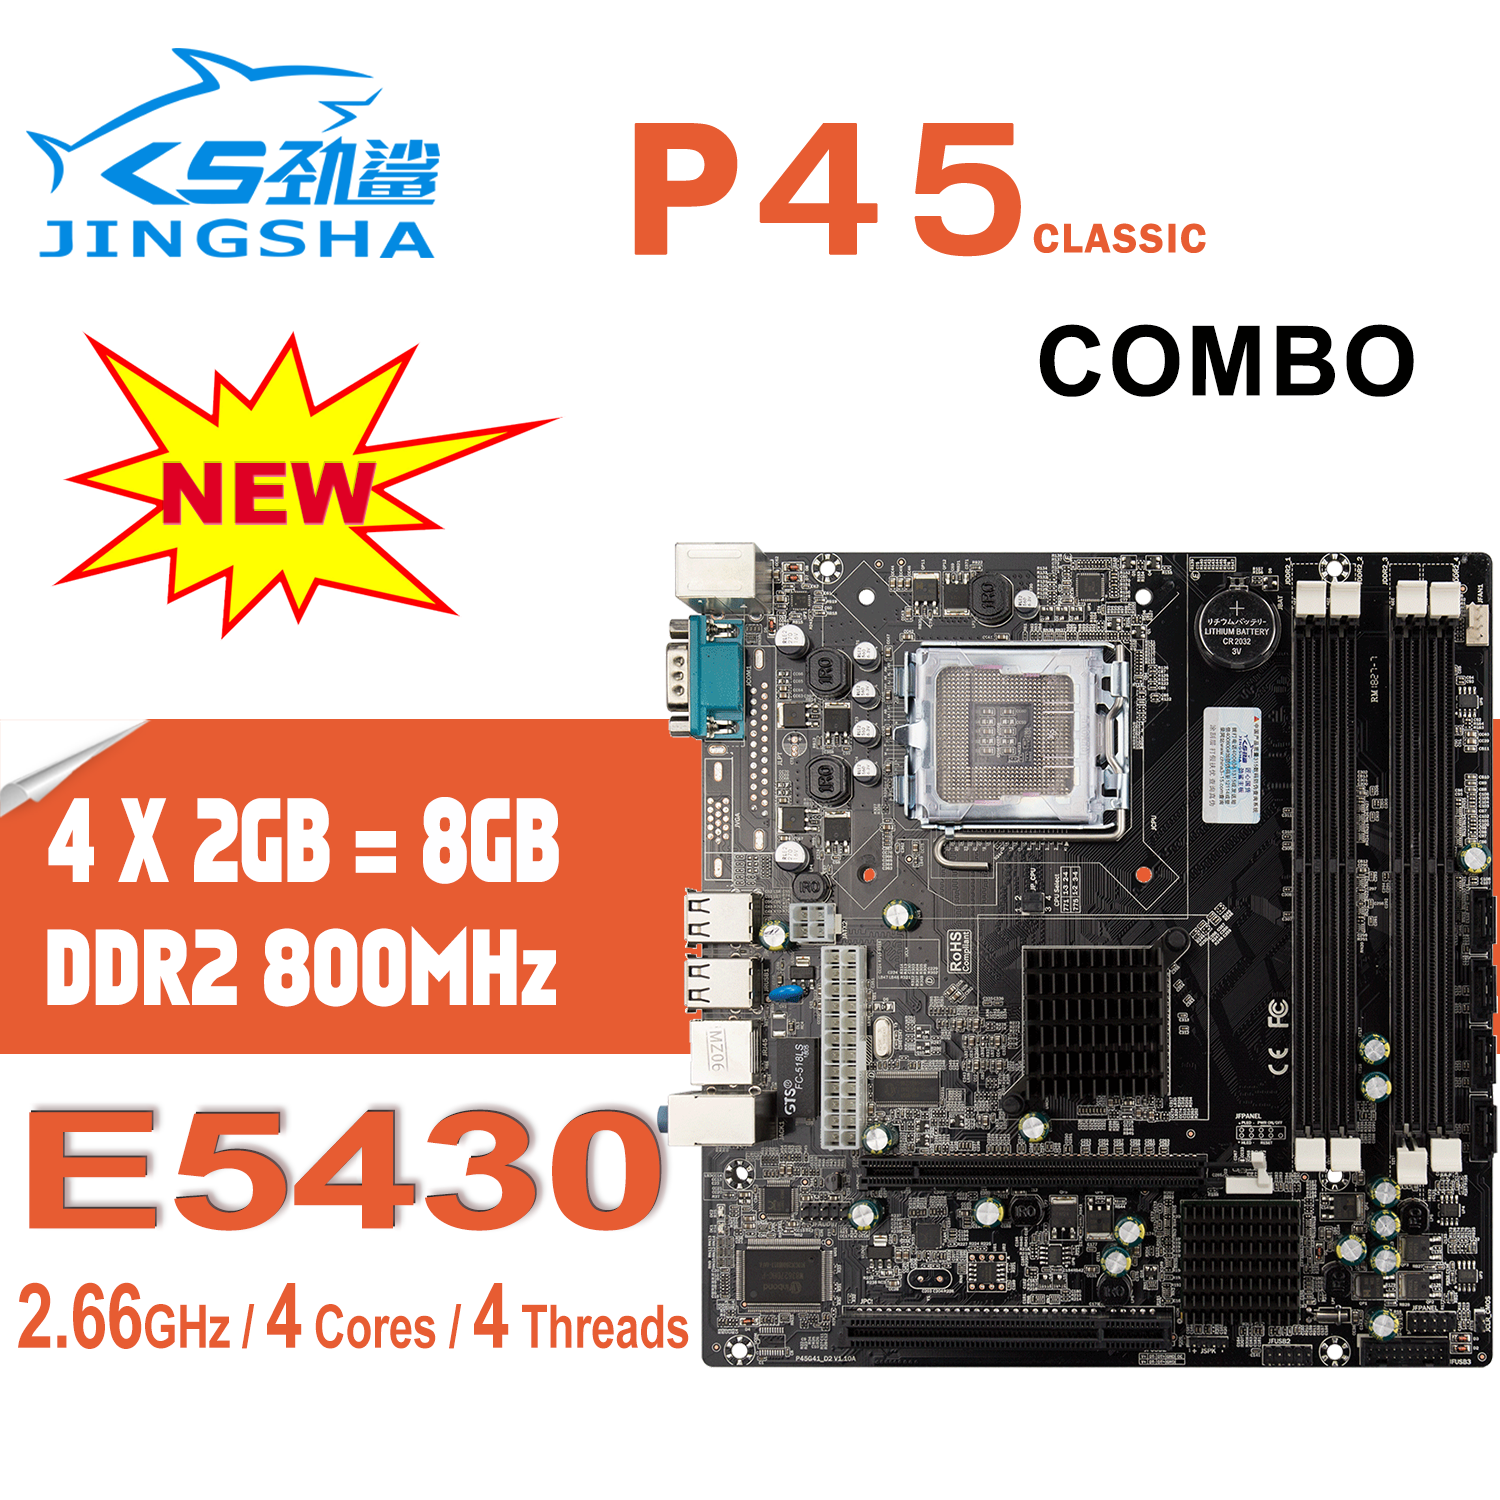 LGA 775 771 Mainboard P45 Motherboard combo kit set with E5430, <font><b>4</b></font> X 2GB <font><b>DDR2</b></font> 800MHz 8GB RAM For Home, Office, Entertainment image